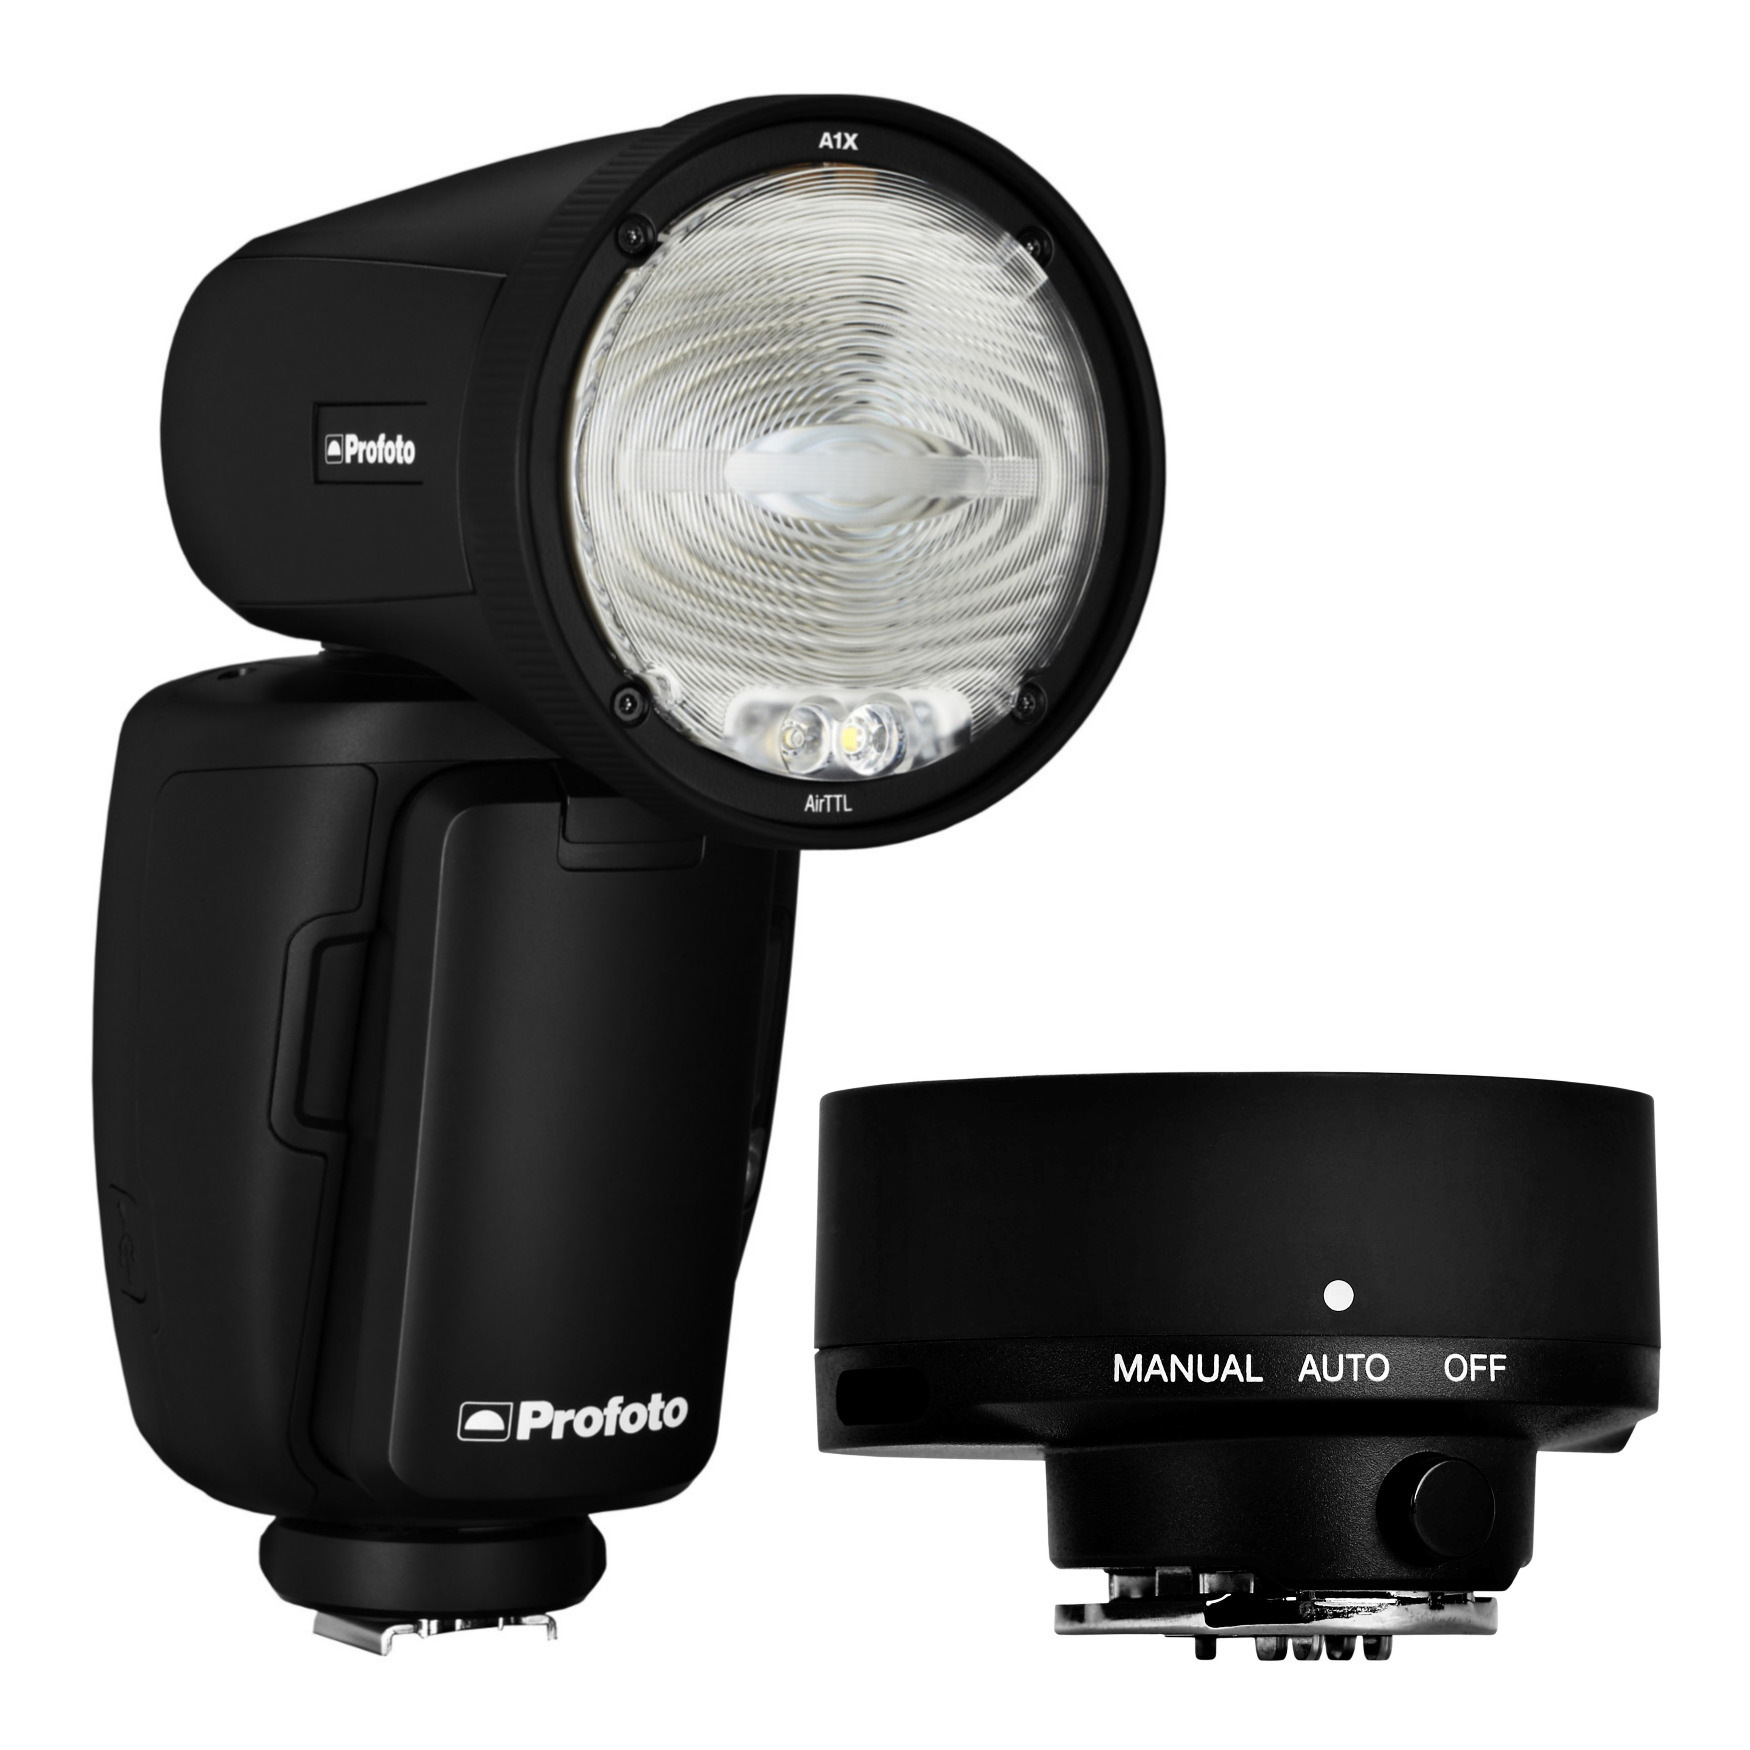 (PRE-ORDER) Profoto Off-camera Kit (Nikon) Featuring A1X AirTTL Remote and On-camera Flash with Profoto Connect Button-free Trigger